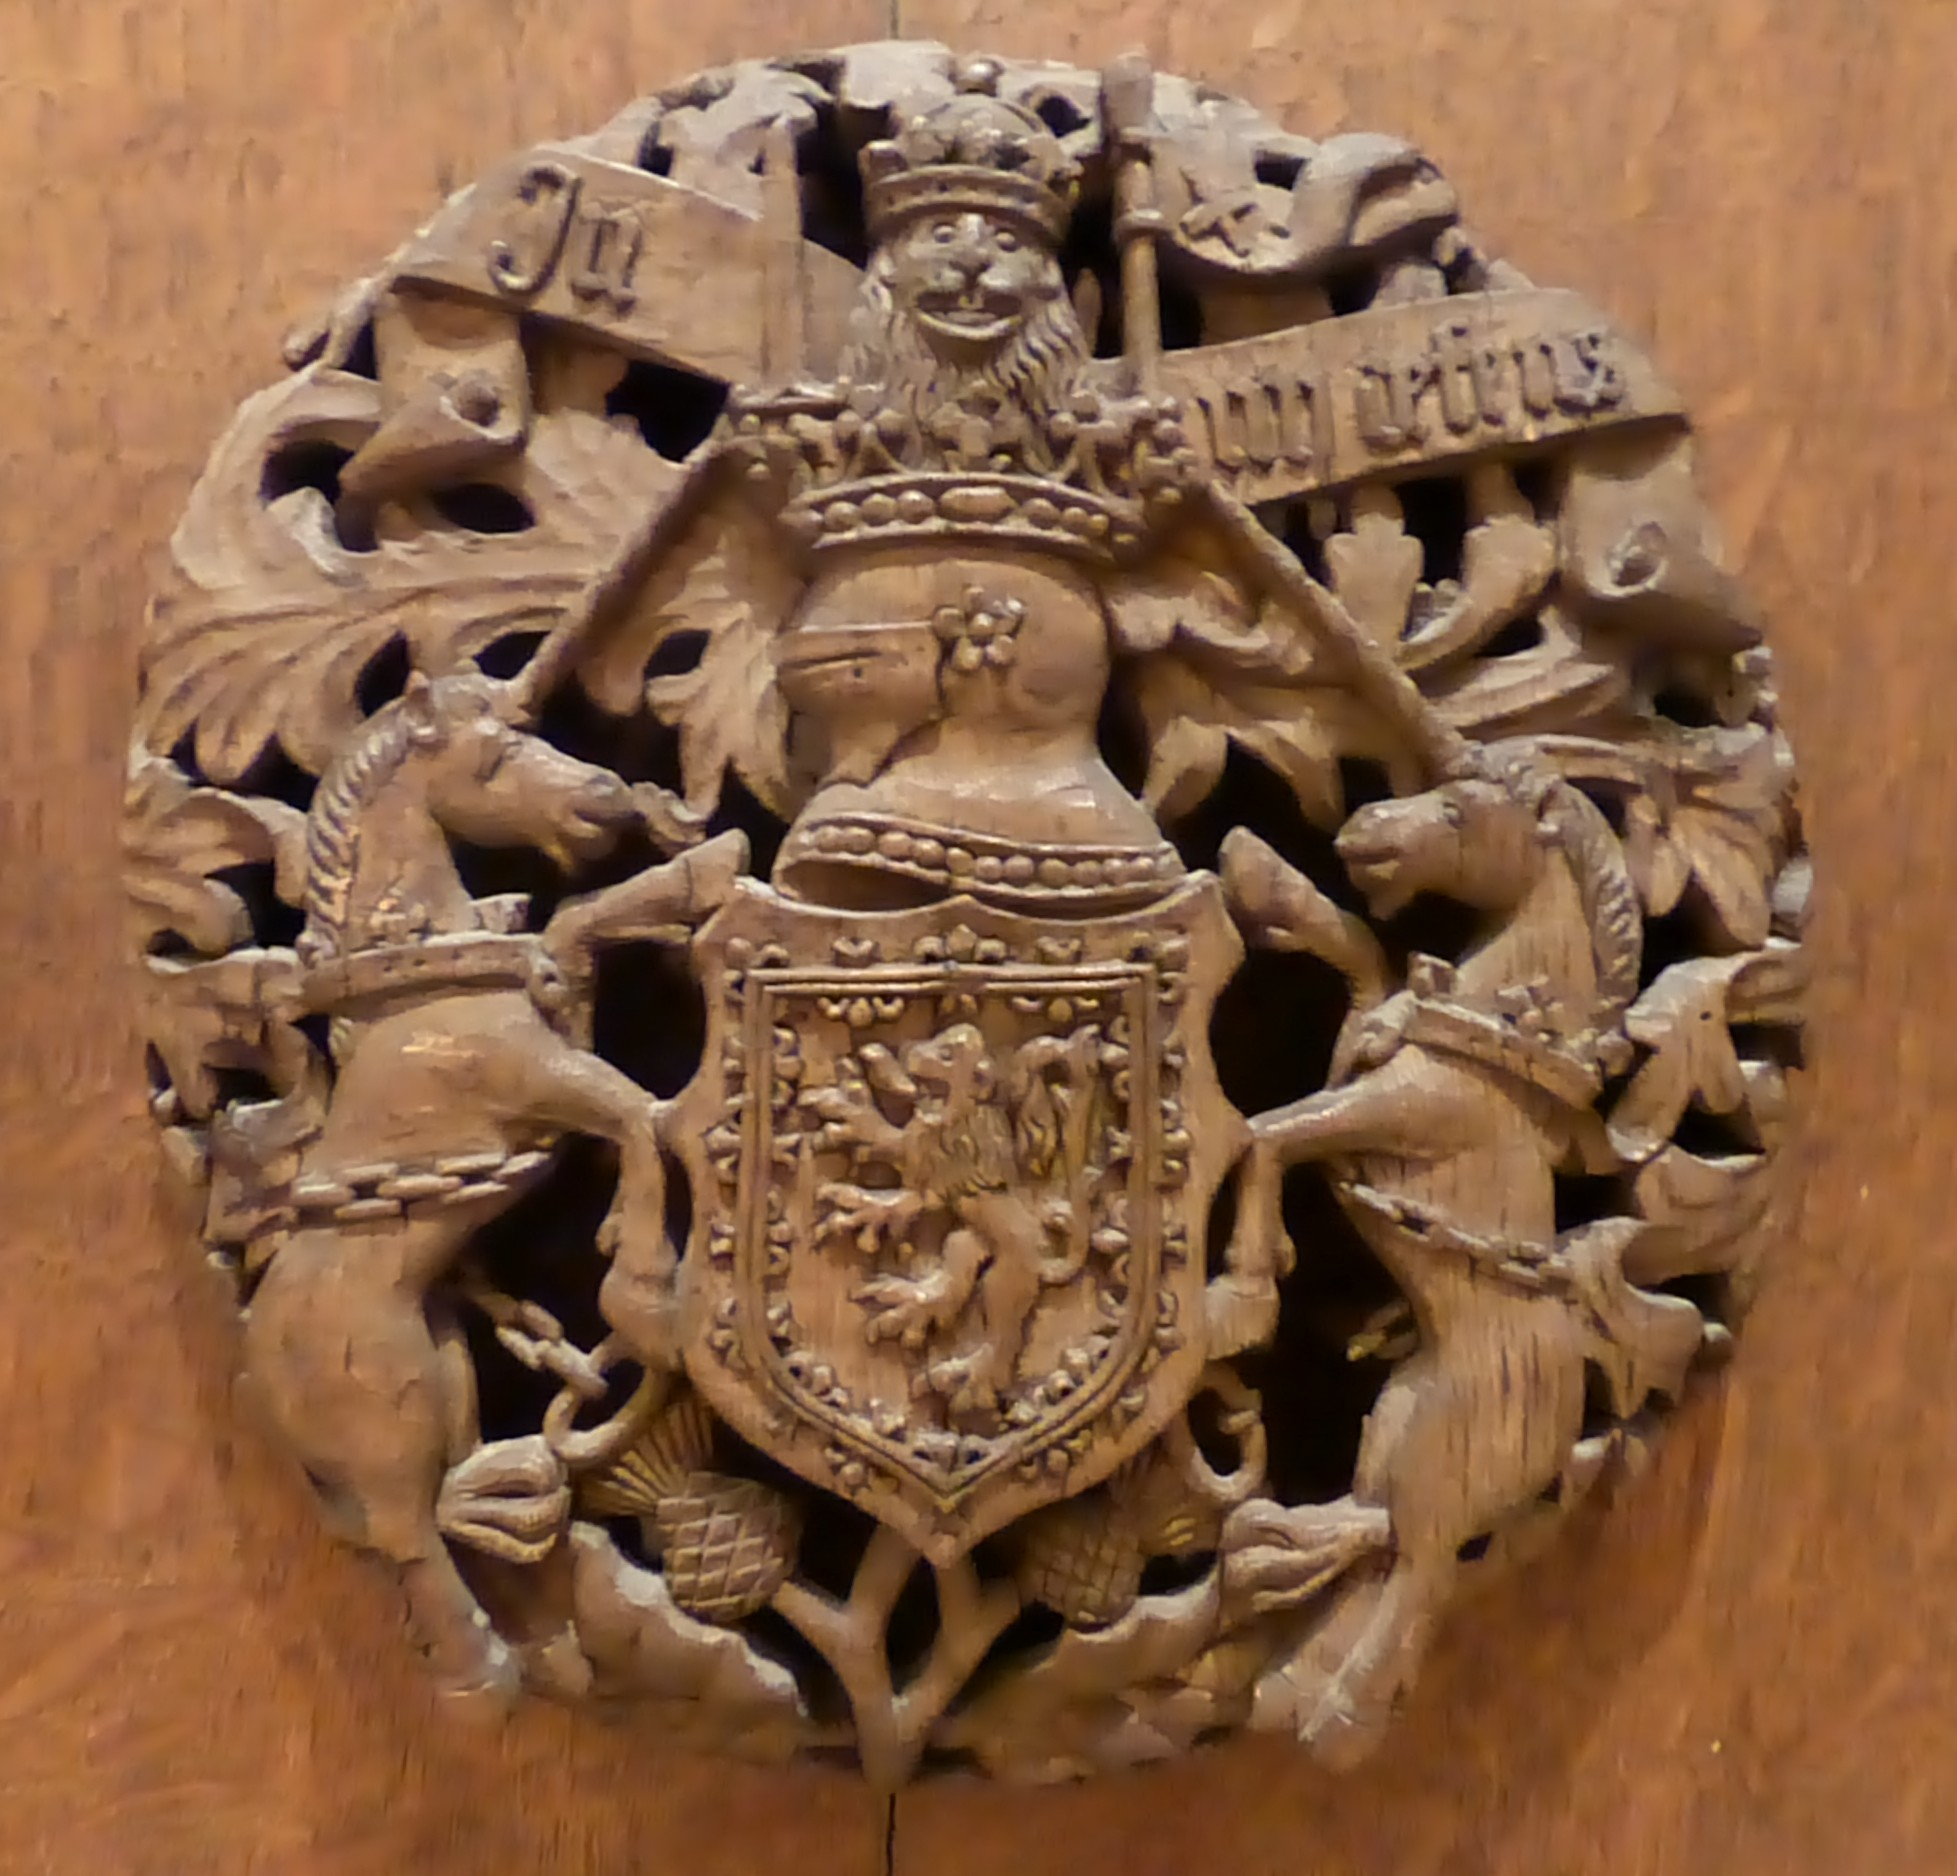 File:Scottish Royal Arms Carving, C.1530s.JPG